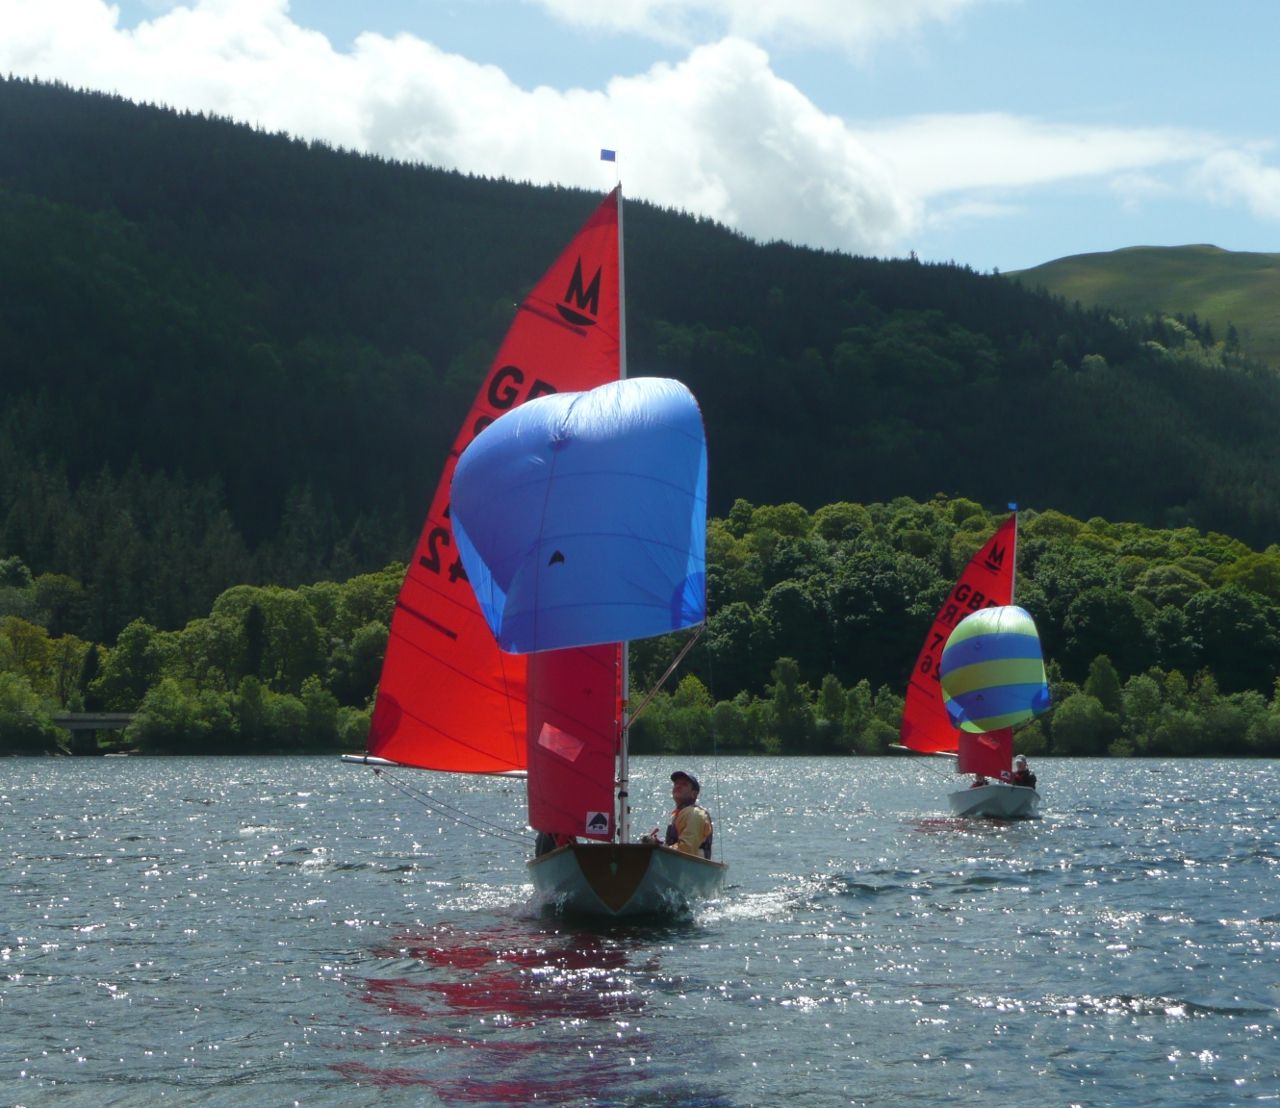 Mirror dinghies, racing on a lake, sailing towards the camera with spinnakers set